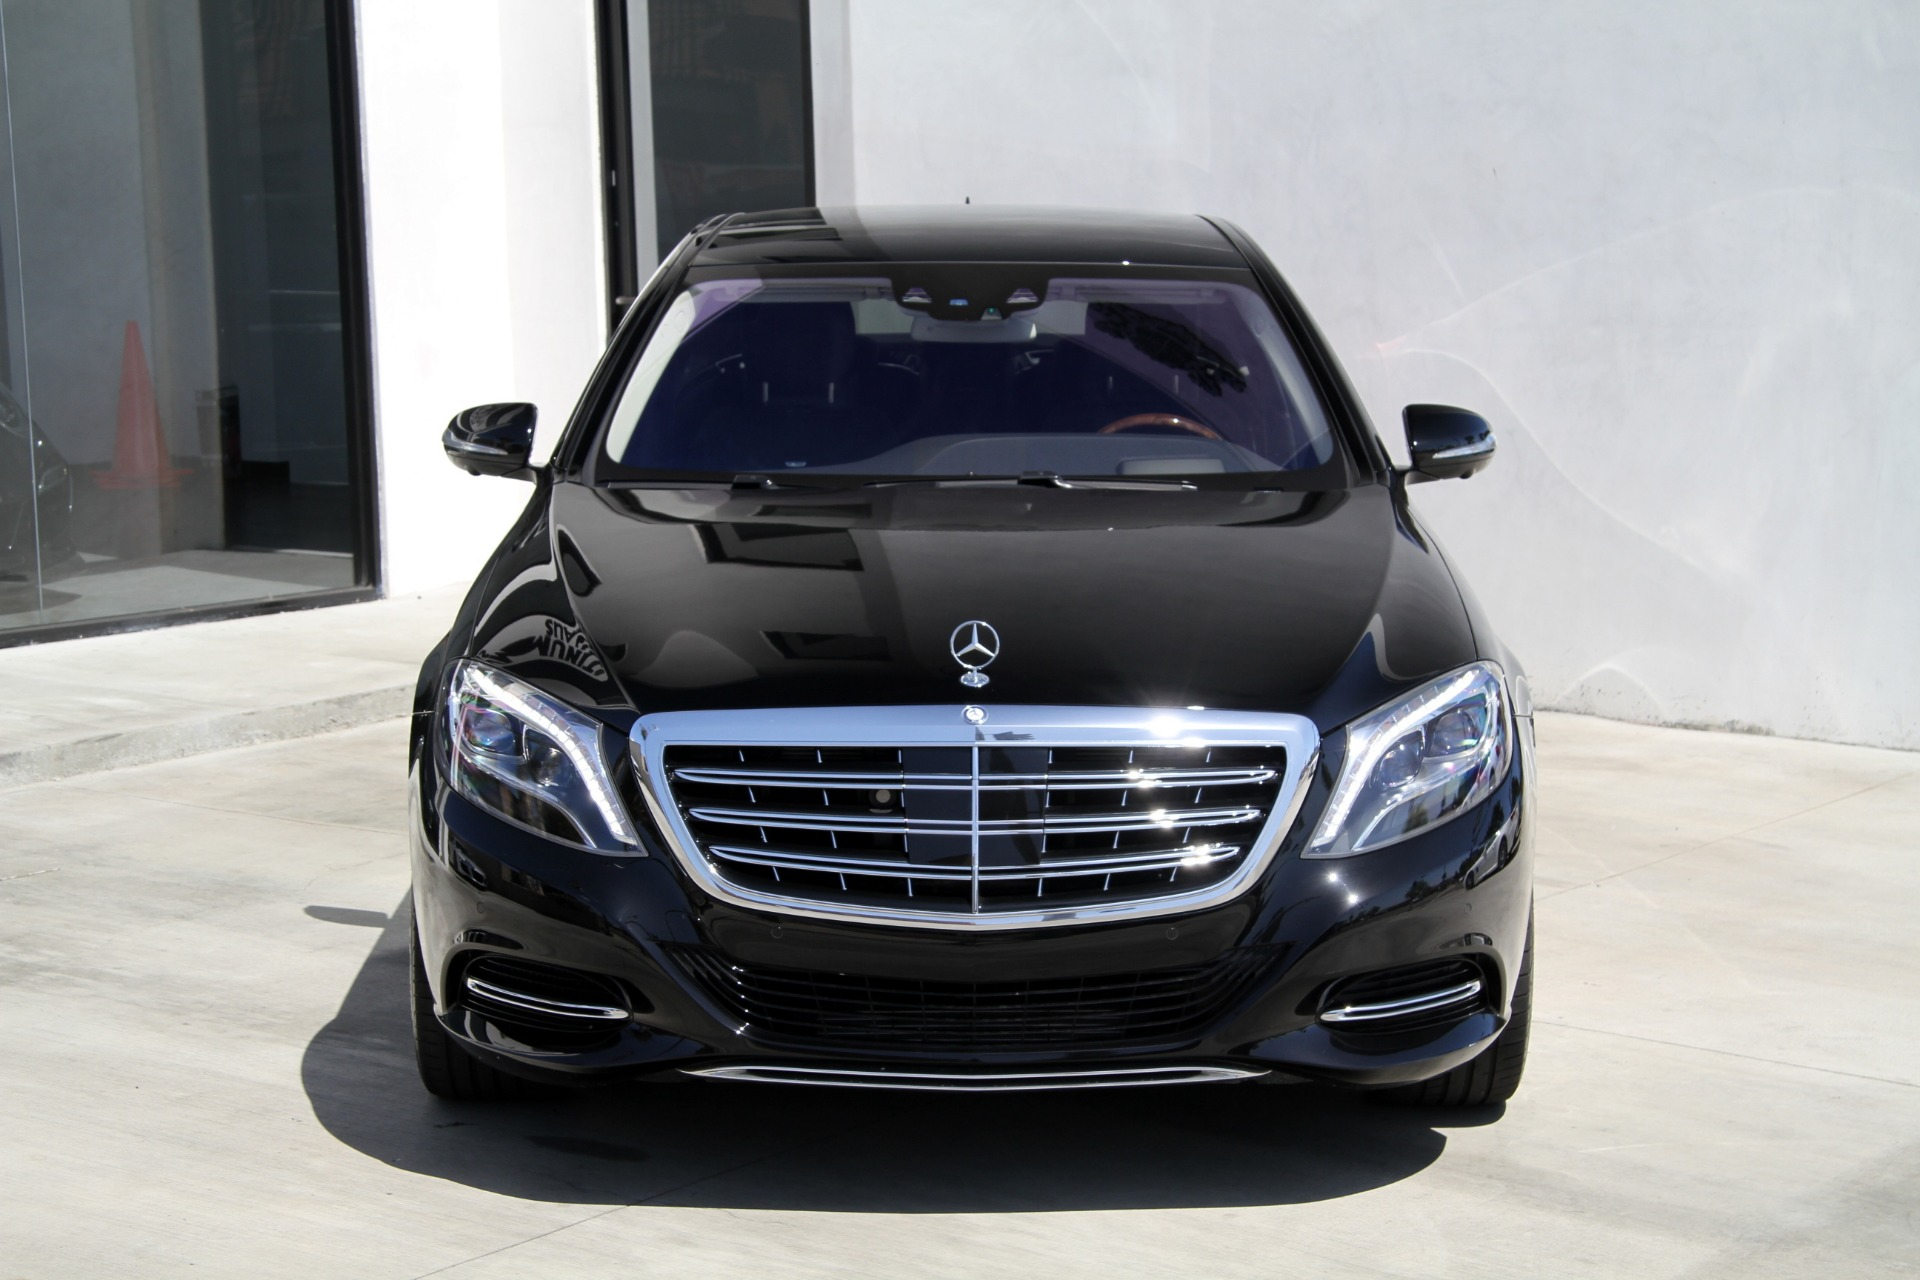 2016 mercedes benz s class mercedes maybach s 600 stock 206658 for sale near redondo beach ca. Black Bedroom Furniture Sets. Home Design Ideas